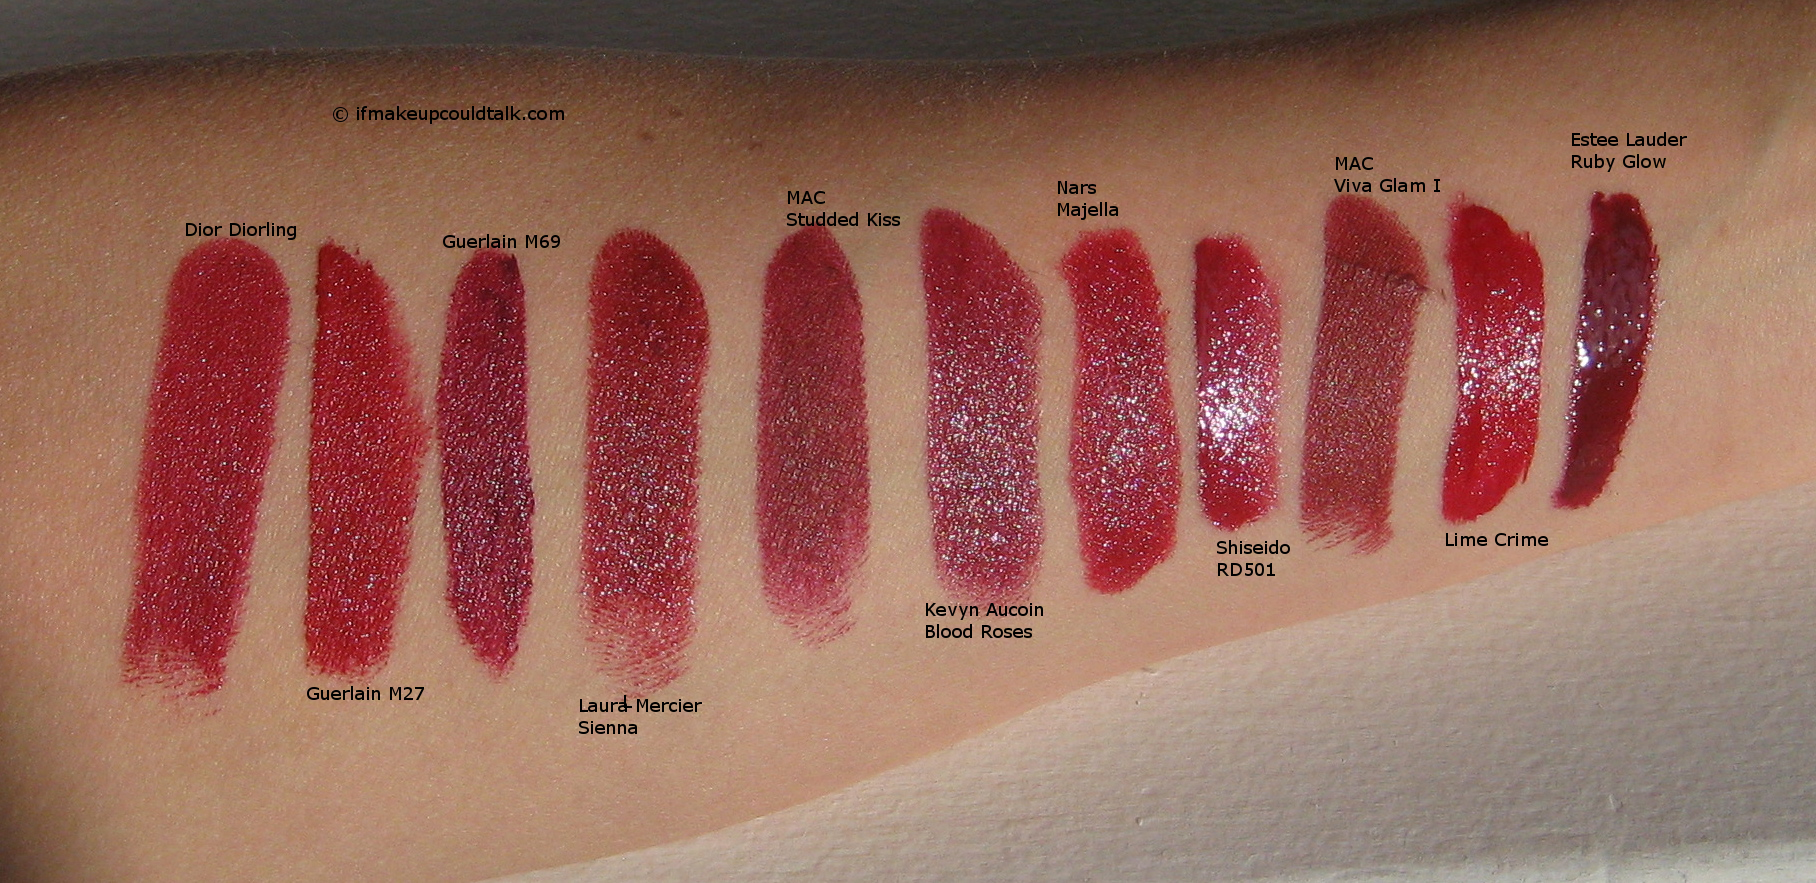 Eccezionale MAC Studded Kiss review, swatches and comparisons. - If Makeup  BB01